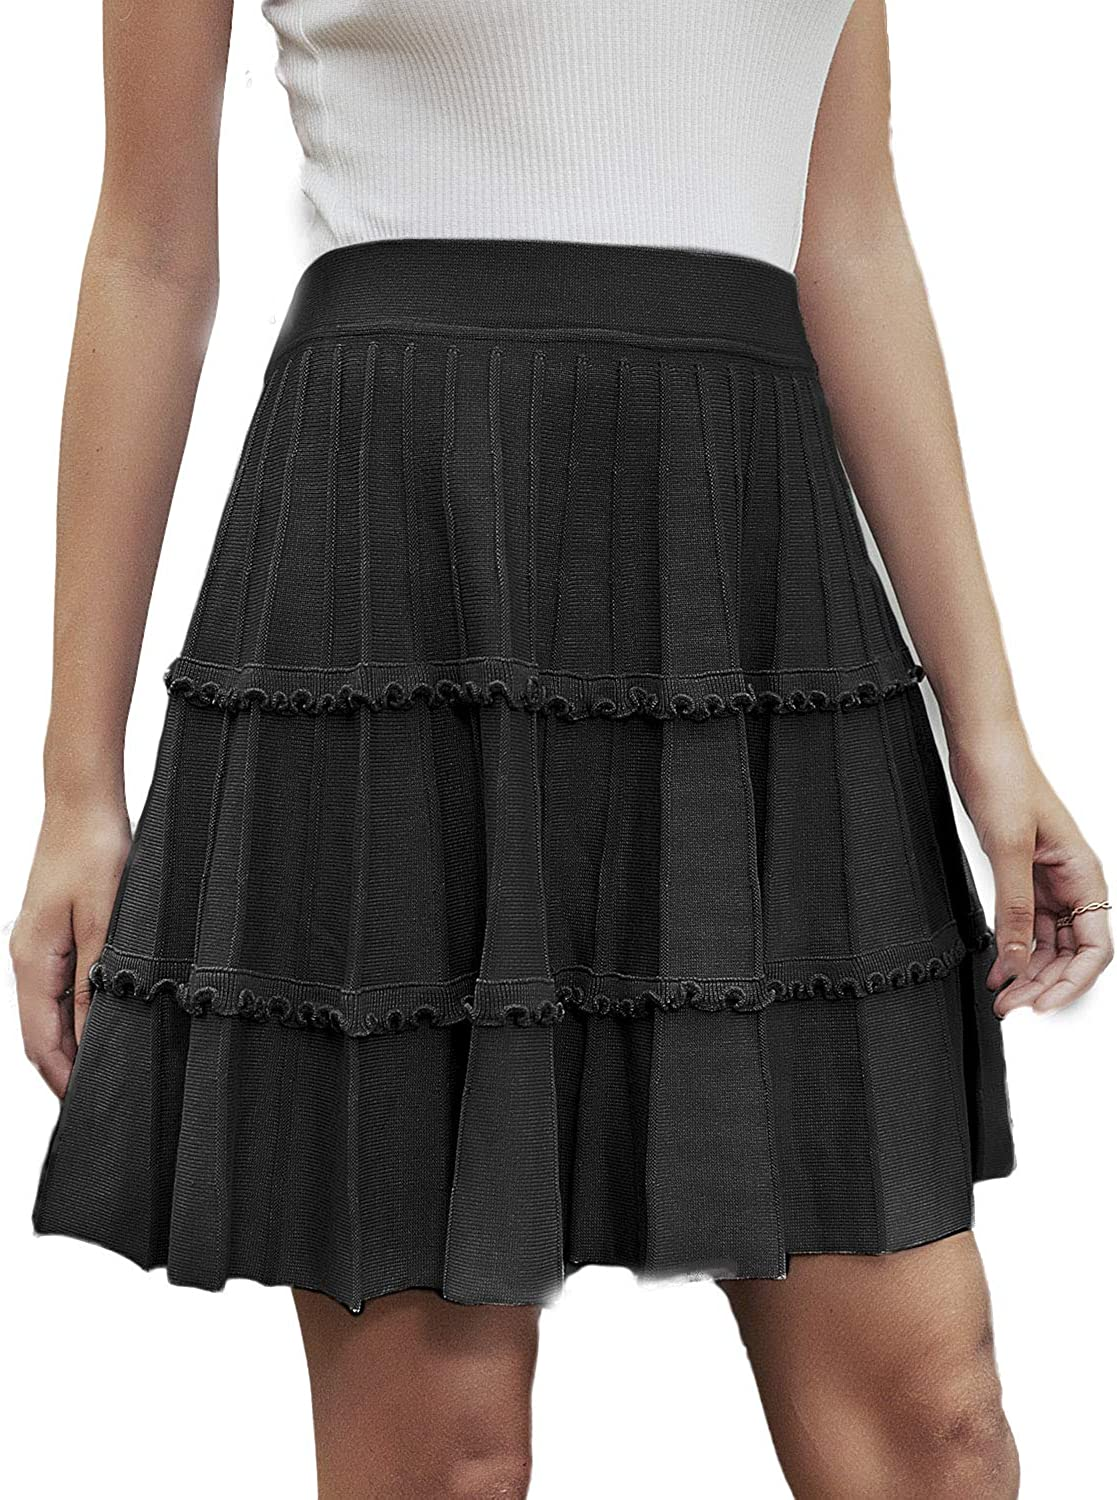 Simplee Women's Flared Pleated Ruffle Knitted A Line Mini Skater Skirt